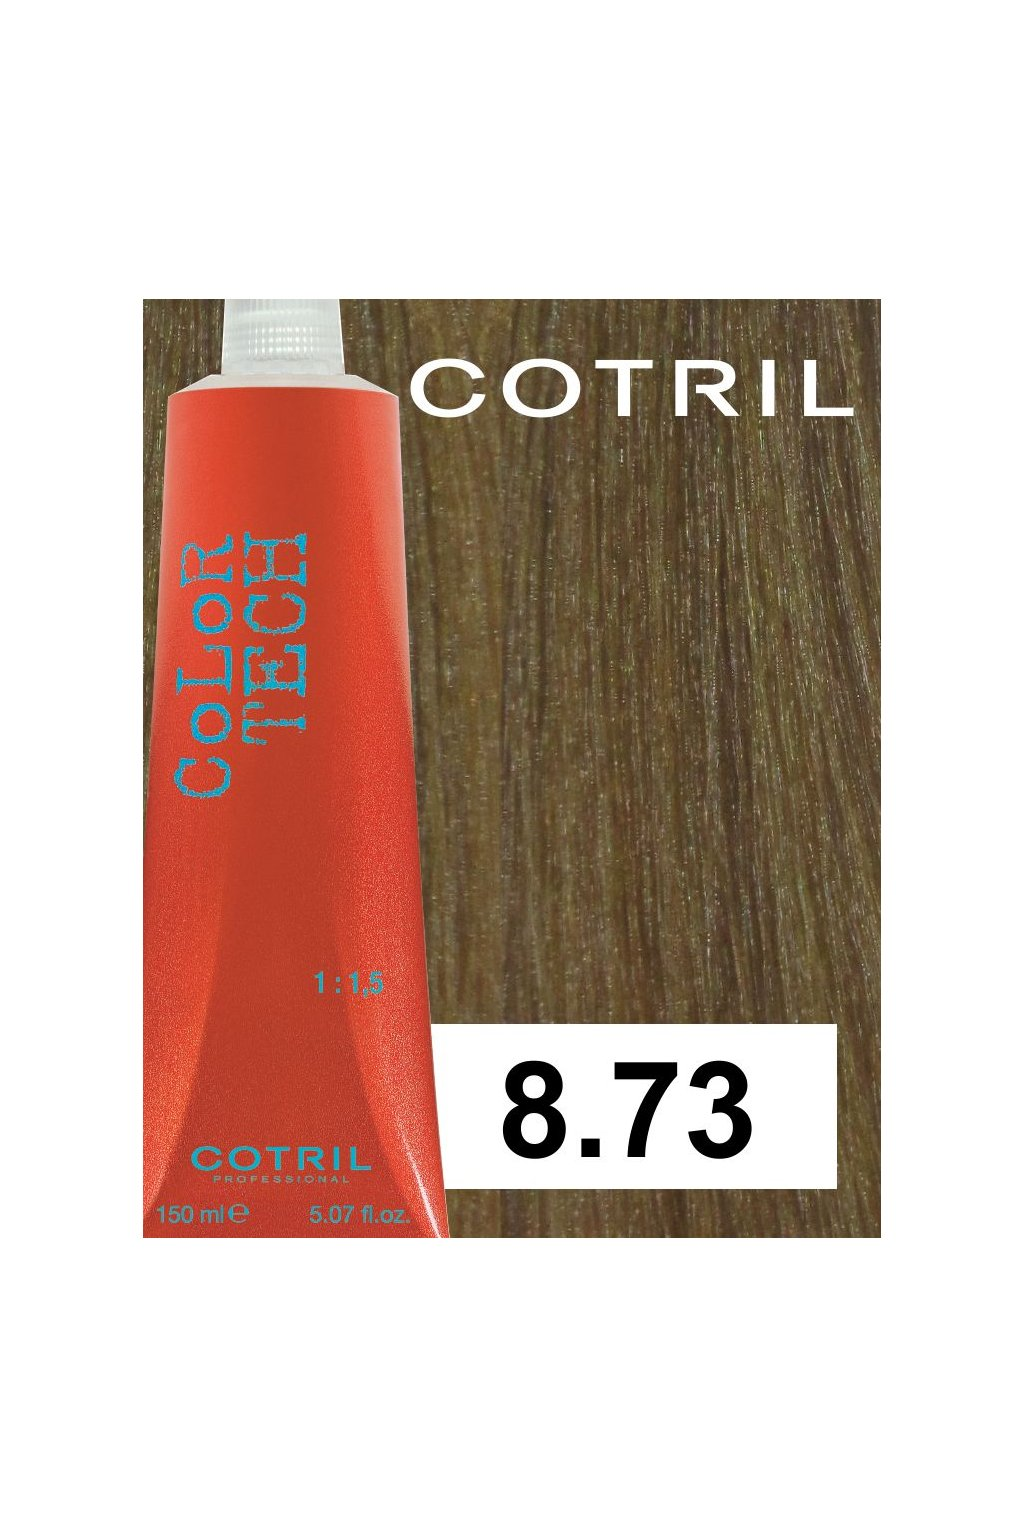 8 73 ct cotril